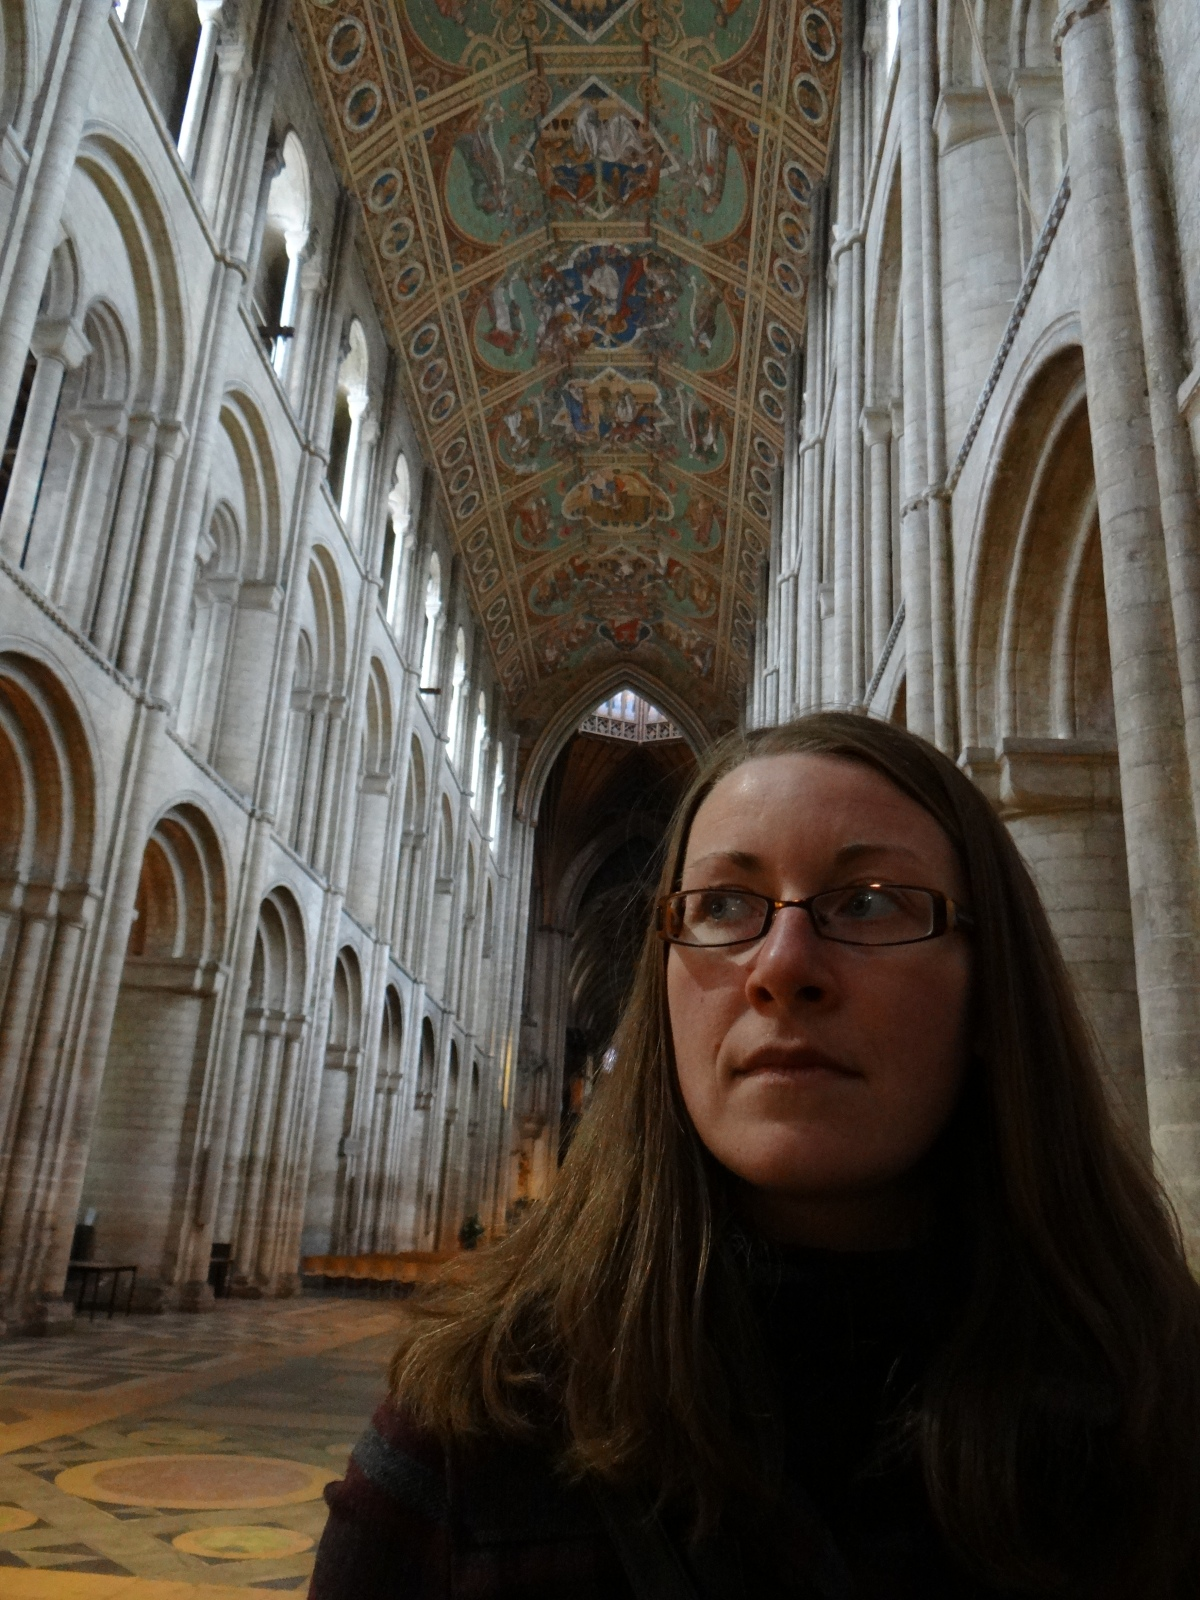 Ely Cathedral, a wonder of the MiddleAges